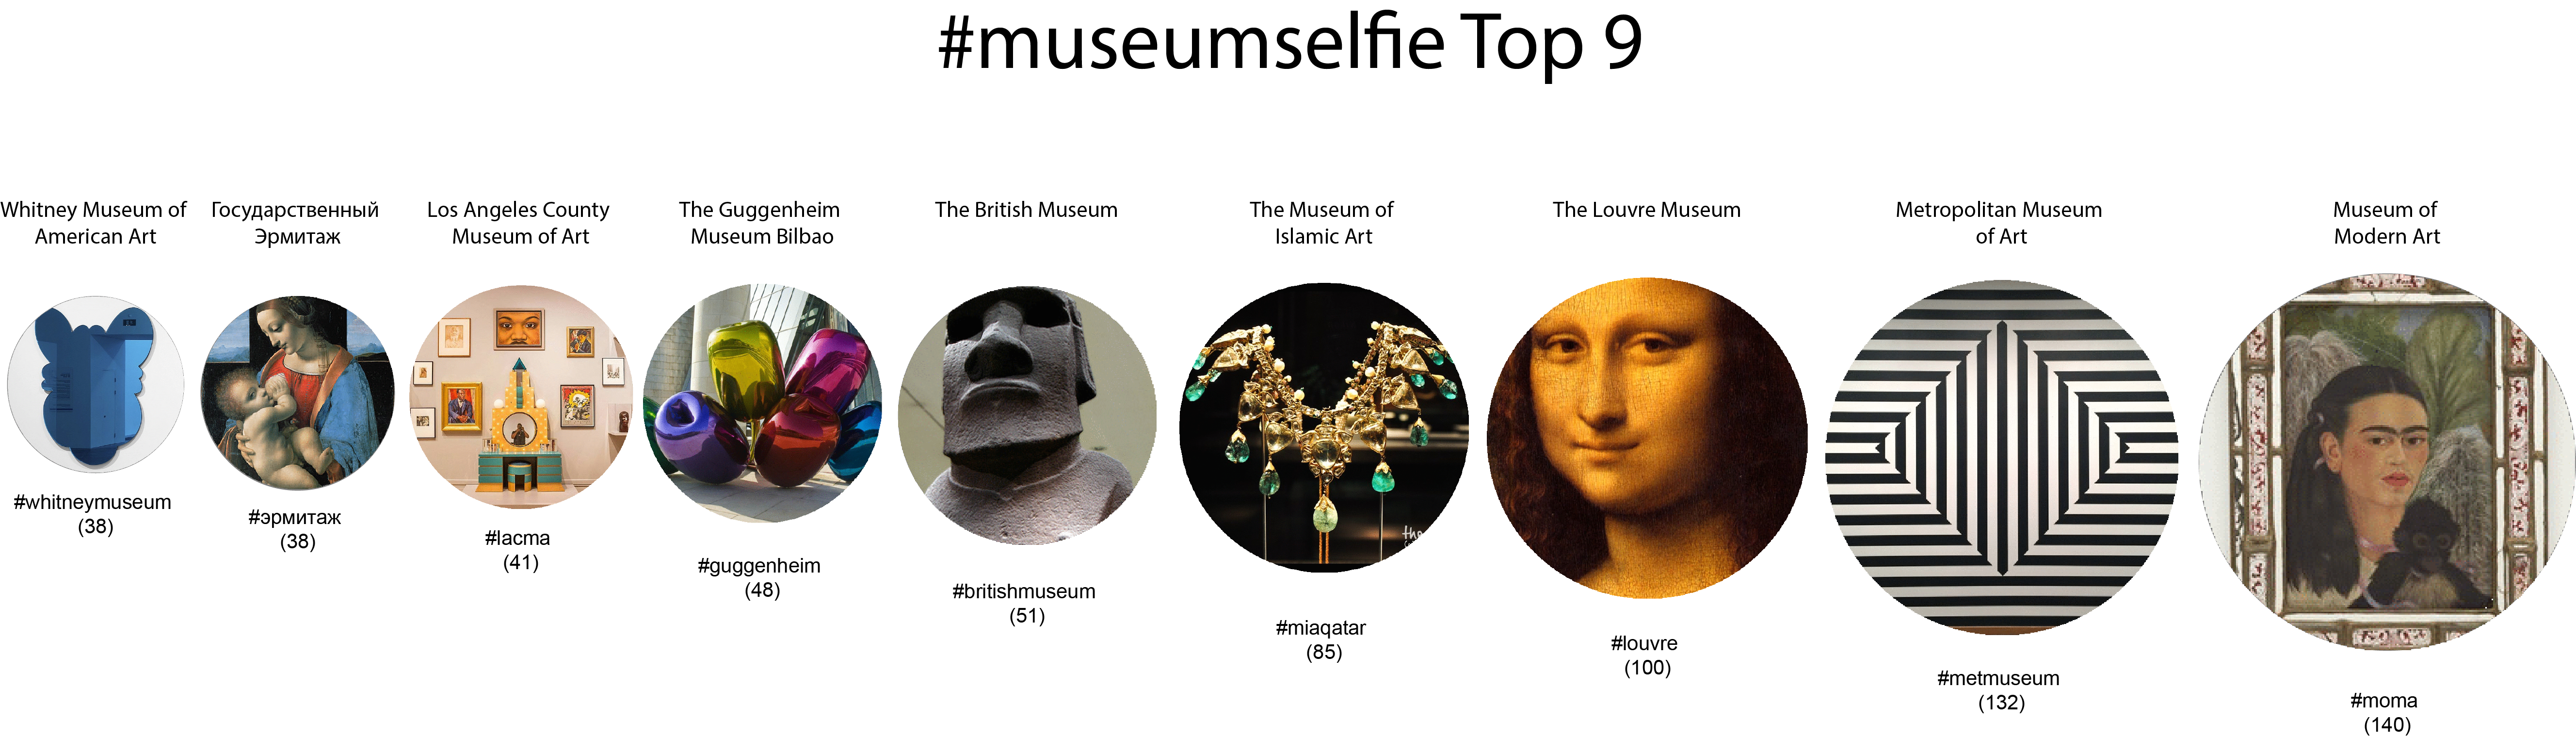 Museumselfie_Top_9_Museums_Bubbles_Timeline.png